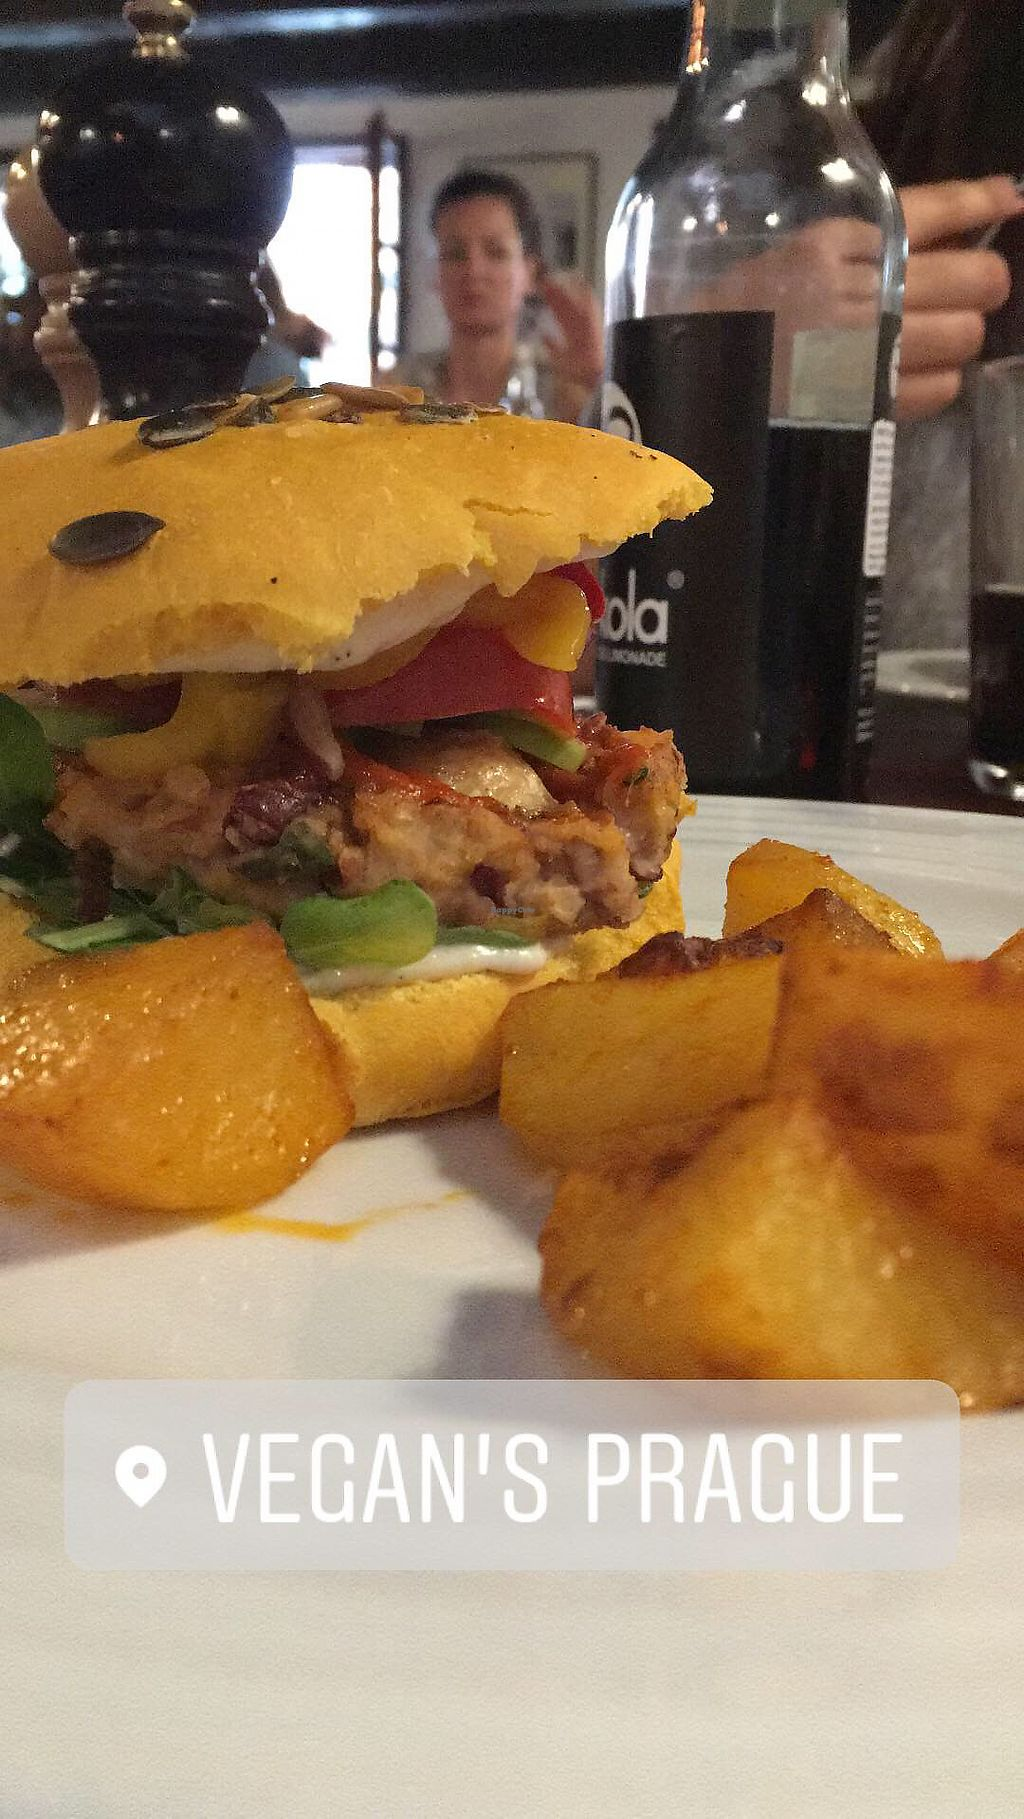 "Photo of Vegan's Prague  by <a href=""/members/profile/briis_w0rld"">briis_w0rld</a> <br/>Daily offer: Monkey burger  <br/> May 19, 2018  - <a href='/contact/abuse/image/71531/402062'>Report</a>"